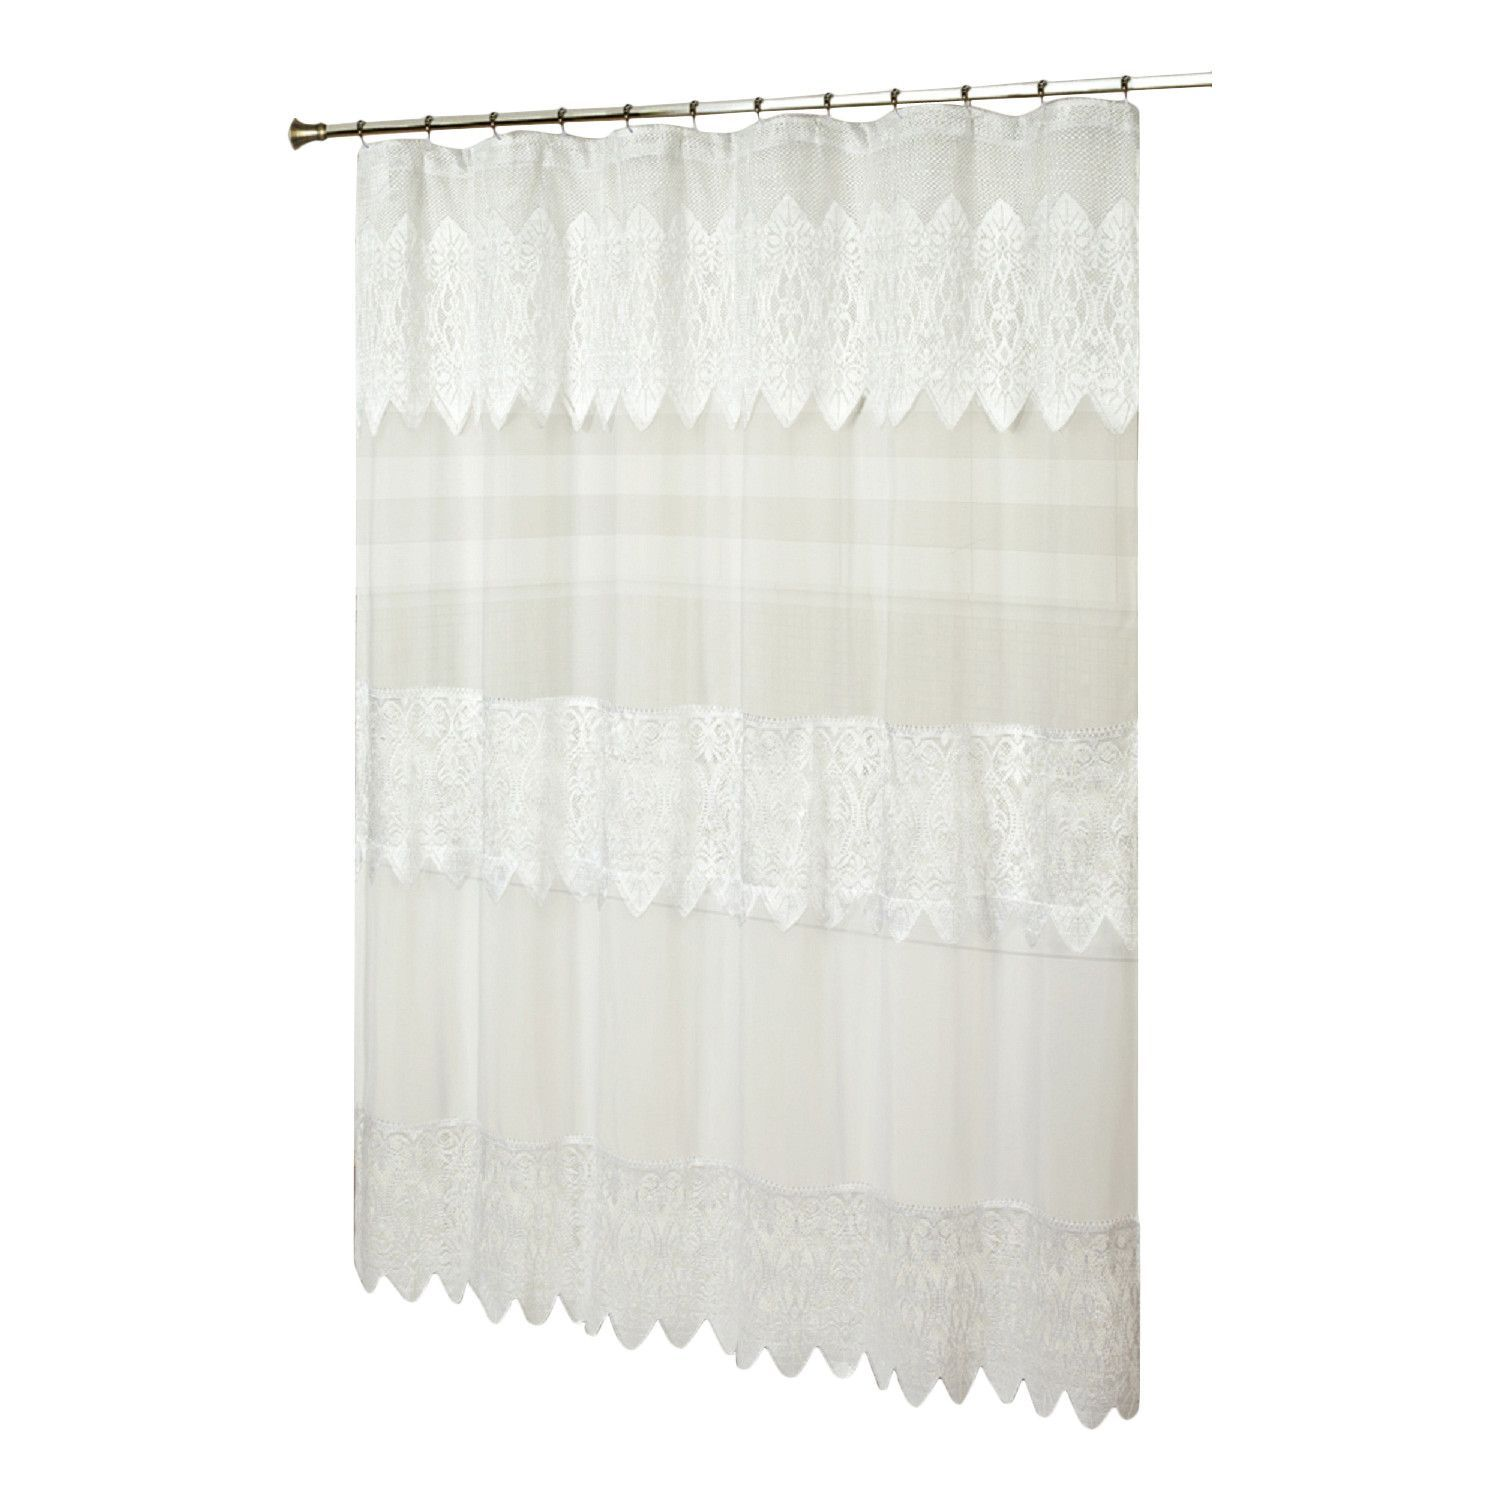 Franklyn Sheer Shower Curtain Products Elegant Shower Curtains